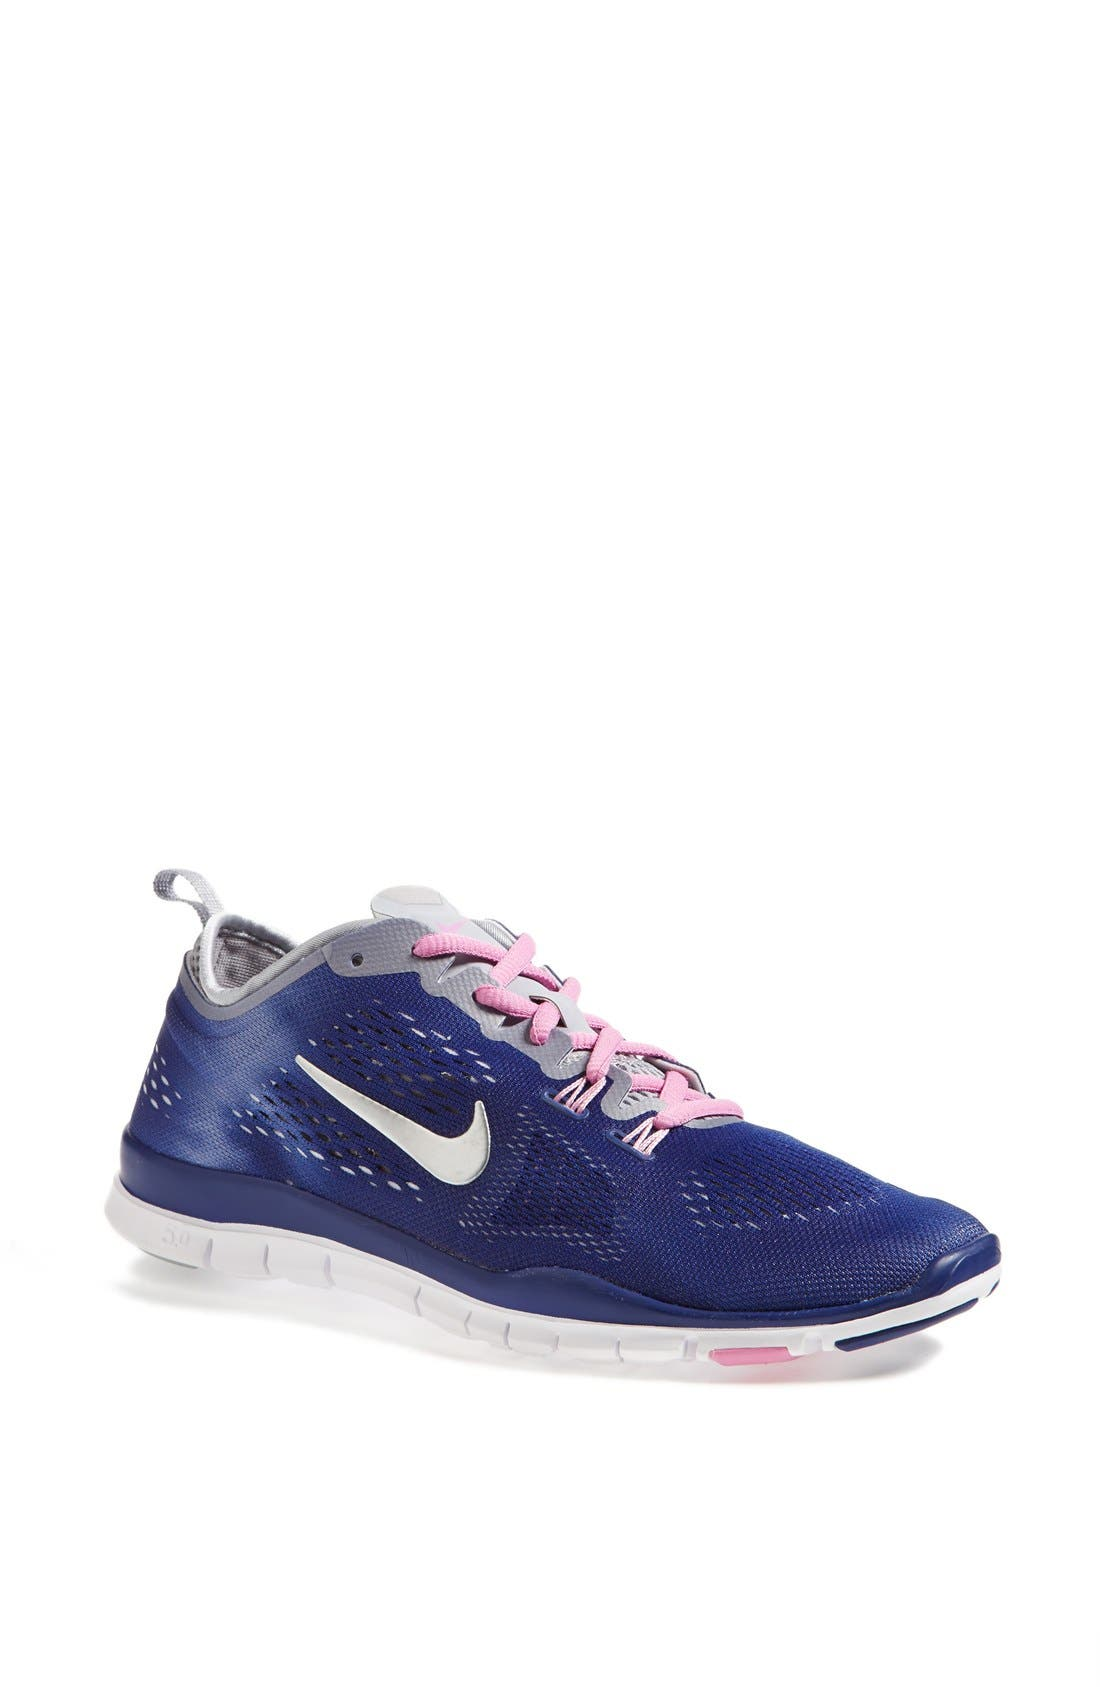 Main Image - Nike 'Free 5.0 Fit' Tie Dye Training Shoe (Women)